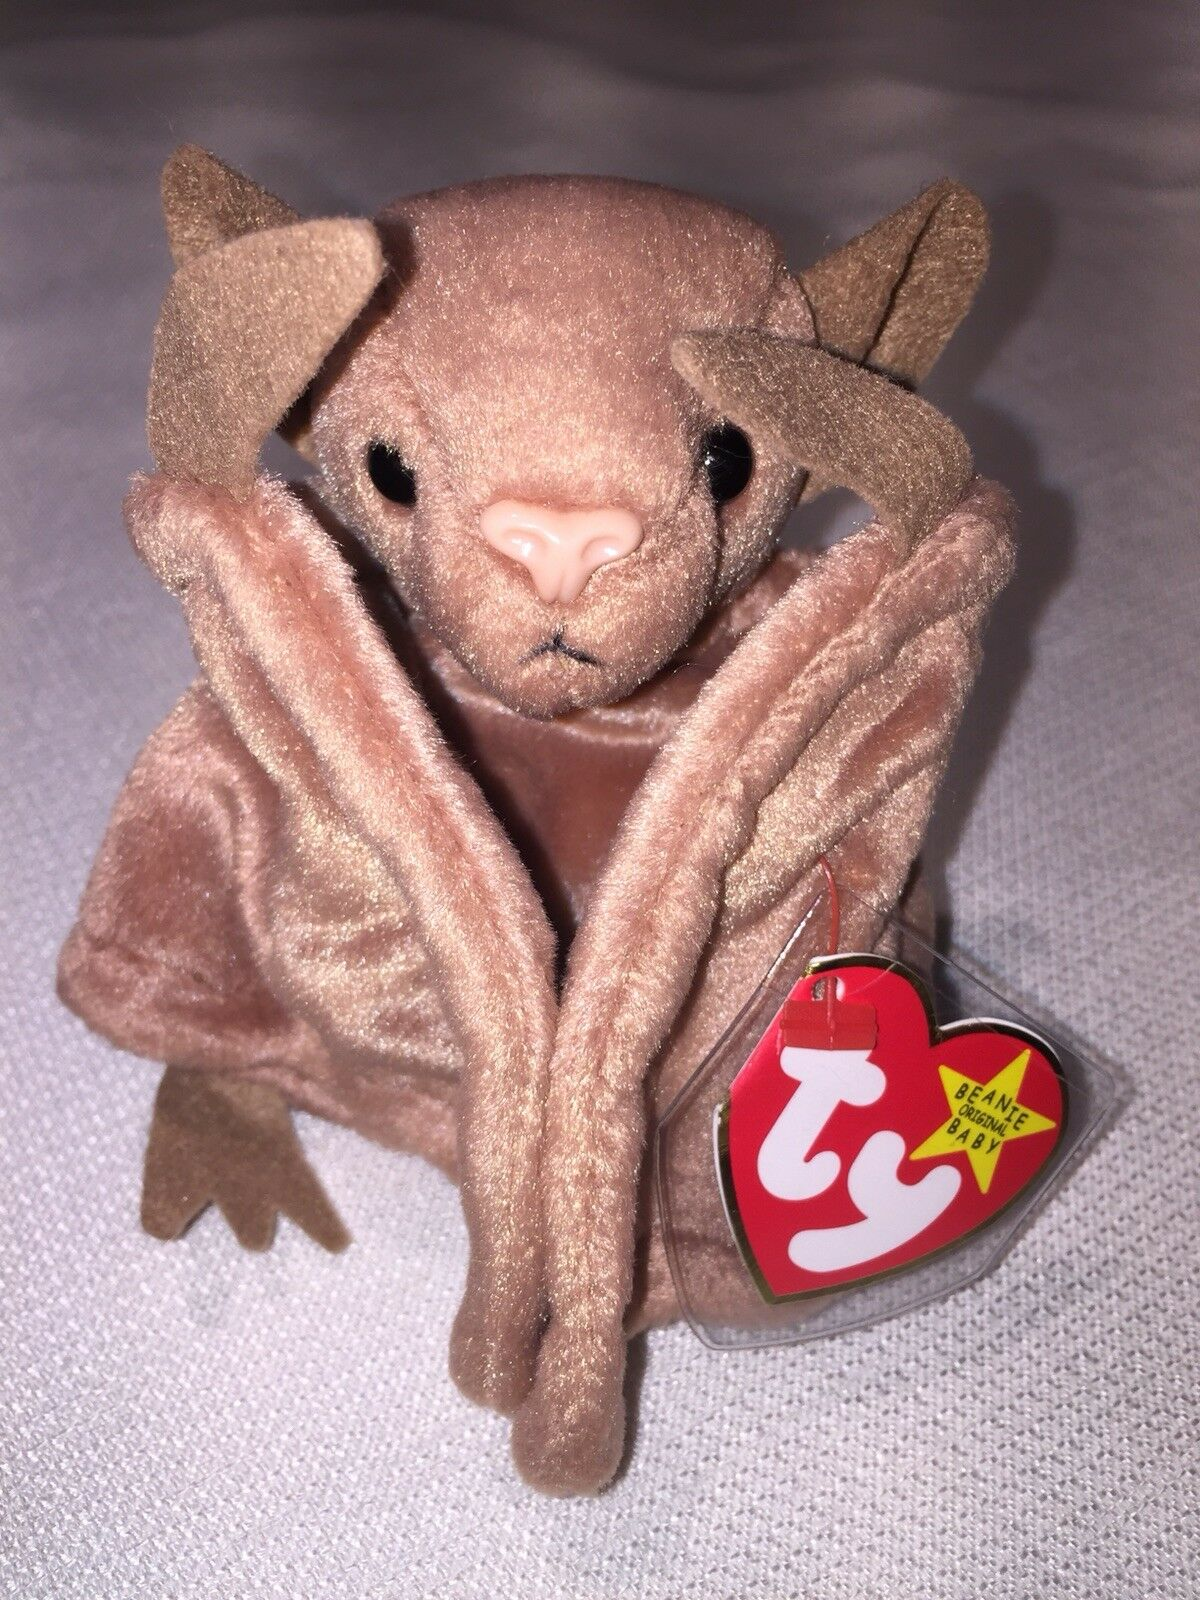 NEW  RARE-Ty Beanie Baby Batty the Bat born 10 29 96 Mint Condition